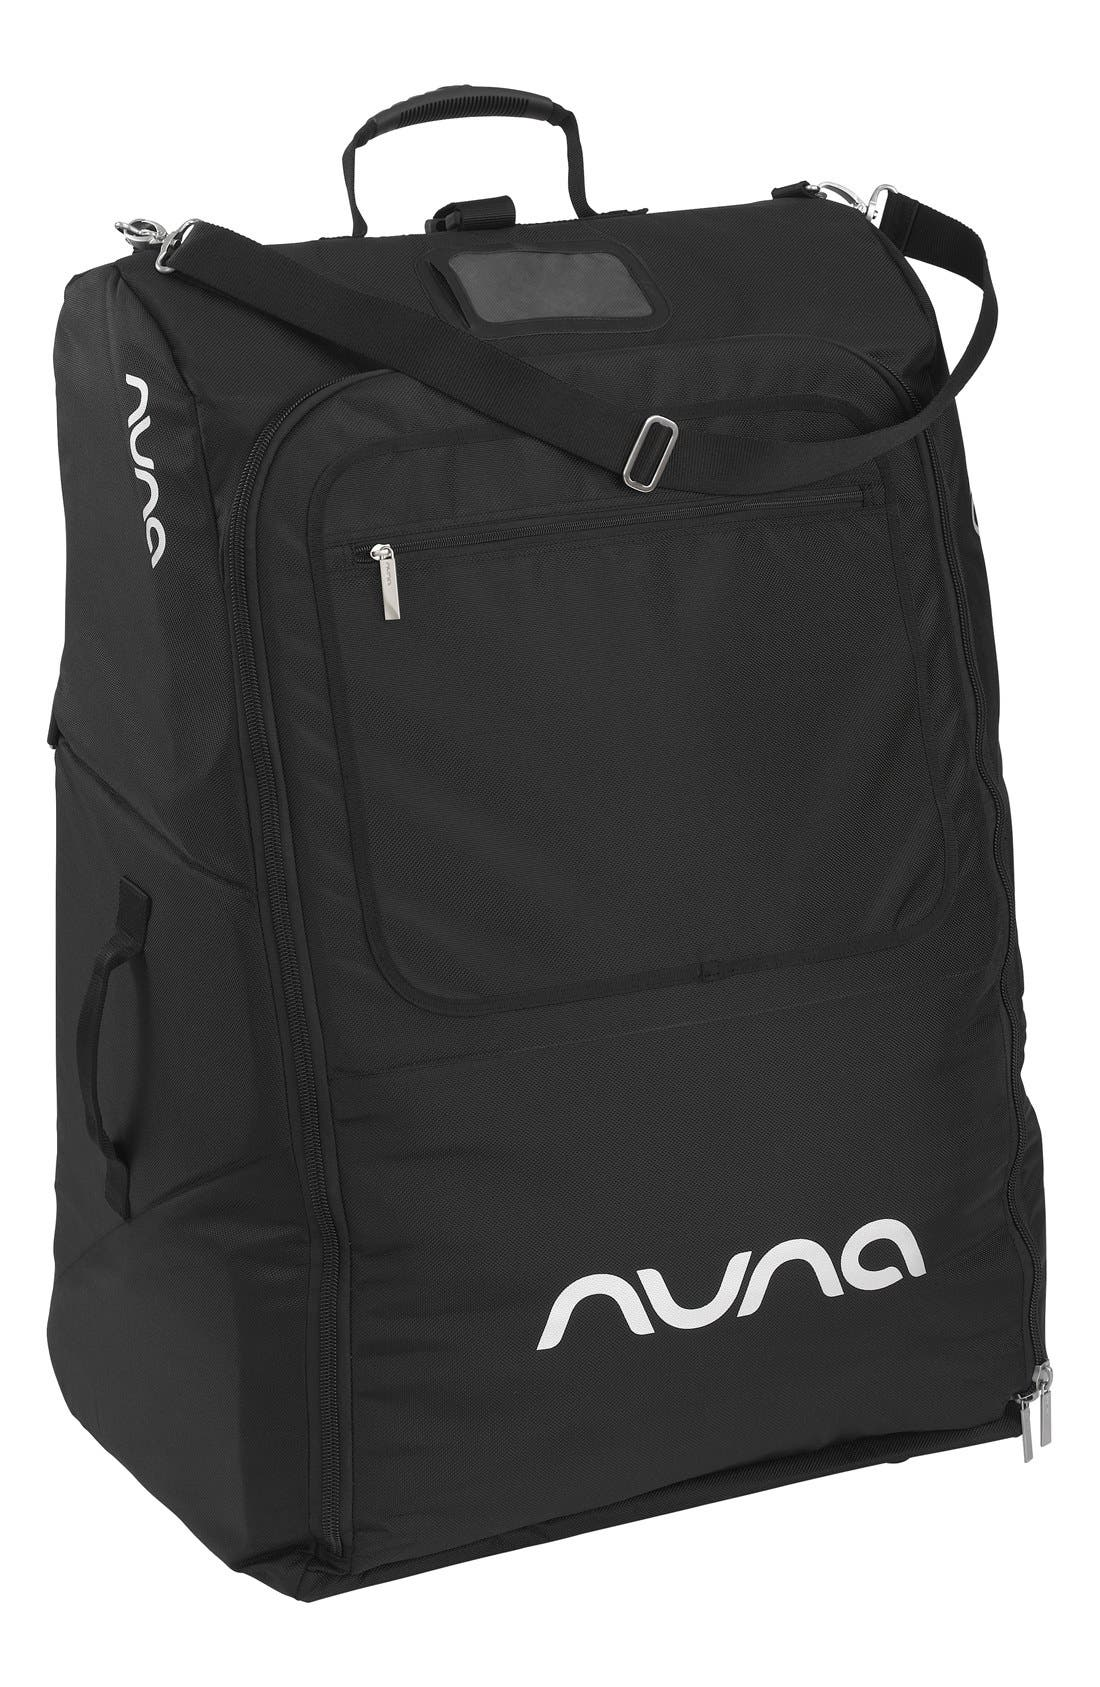 Alternate Image 1 Selected - nuna Stroller Transport Bag